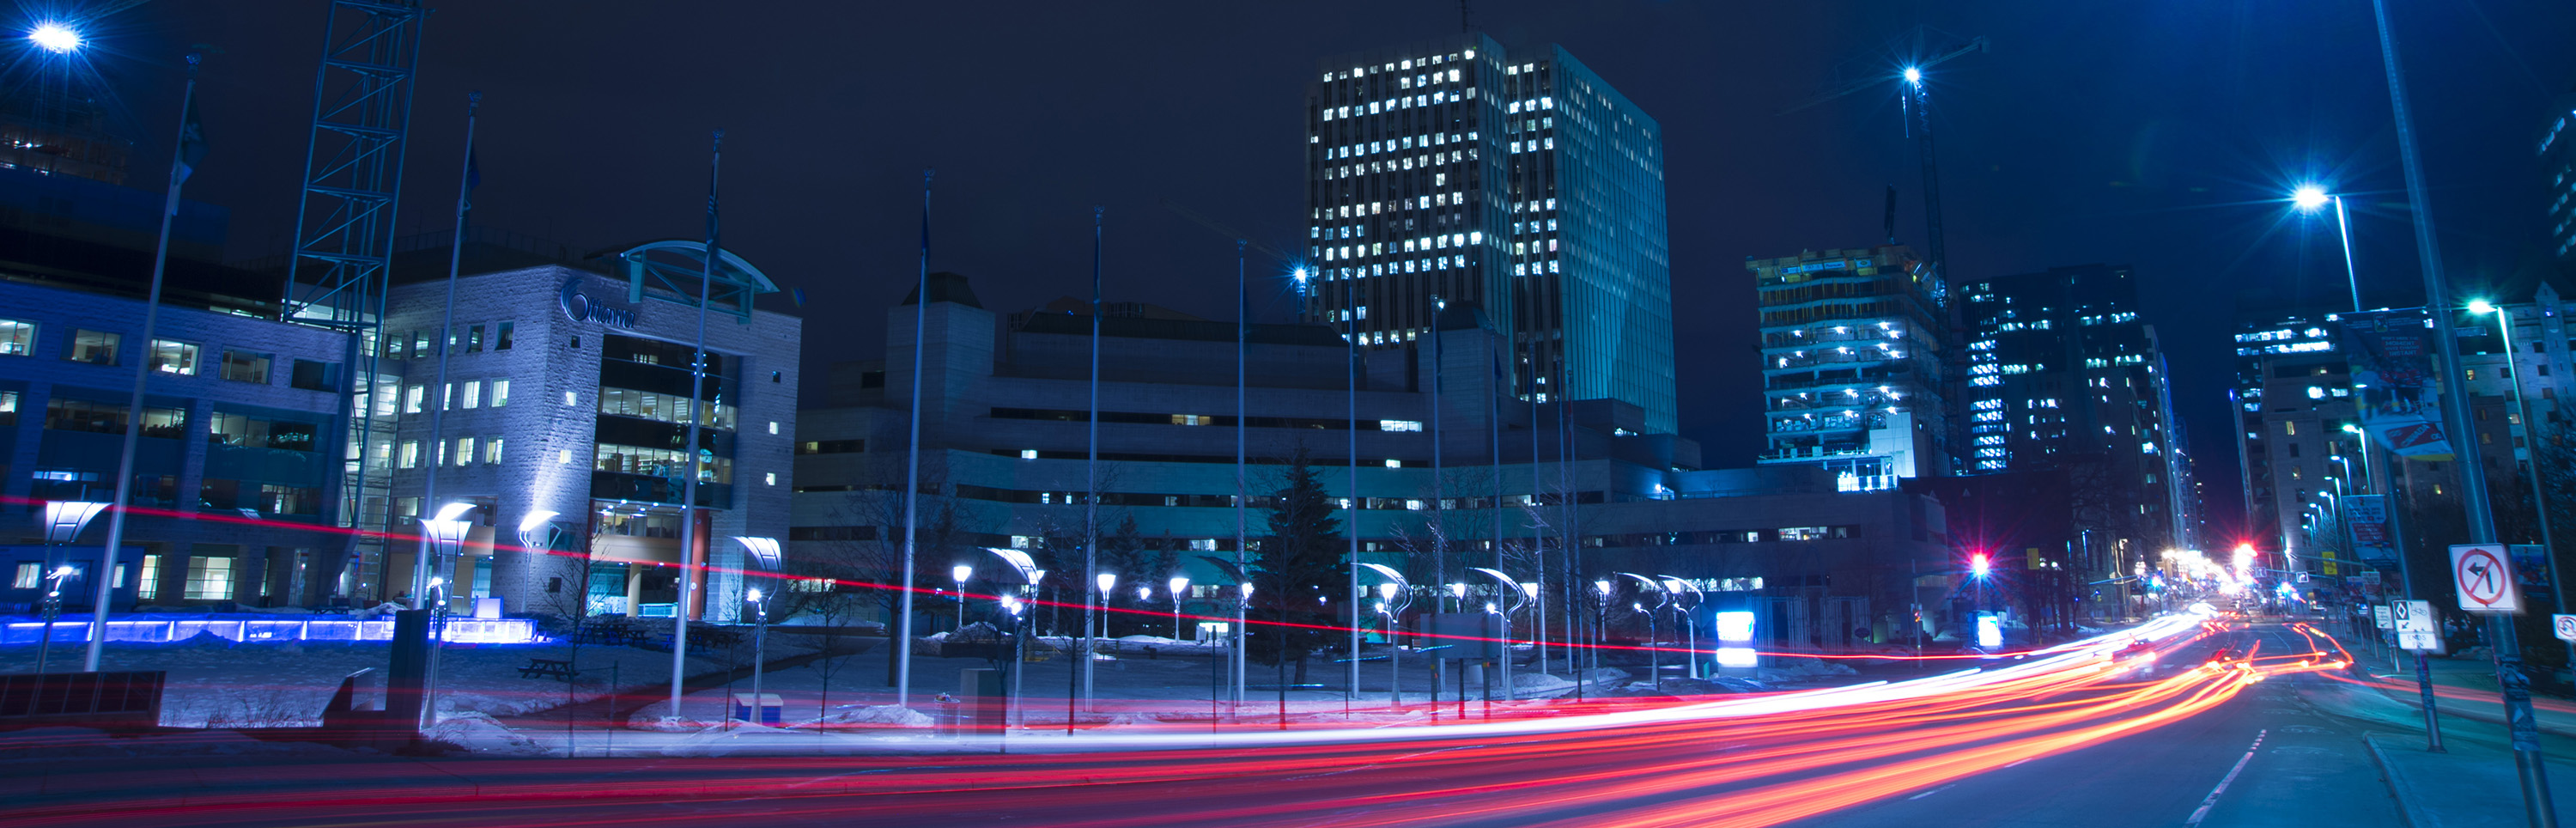 Photo of Ottawa at night - View our Business plan